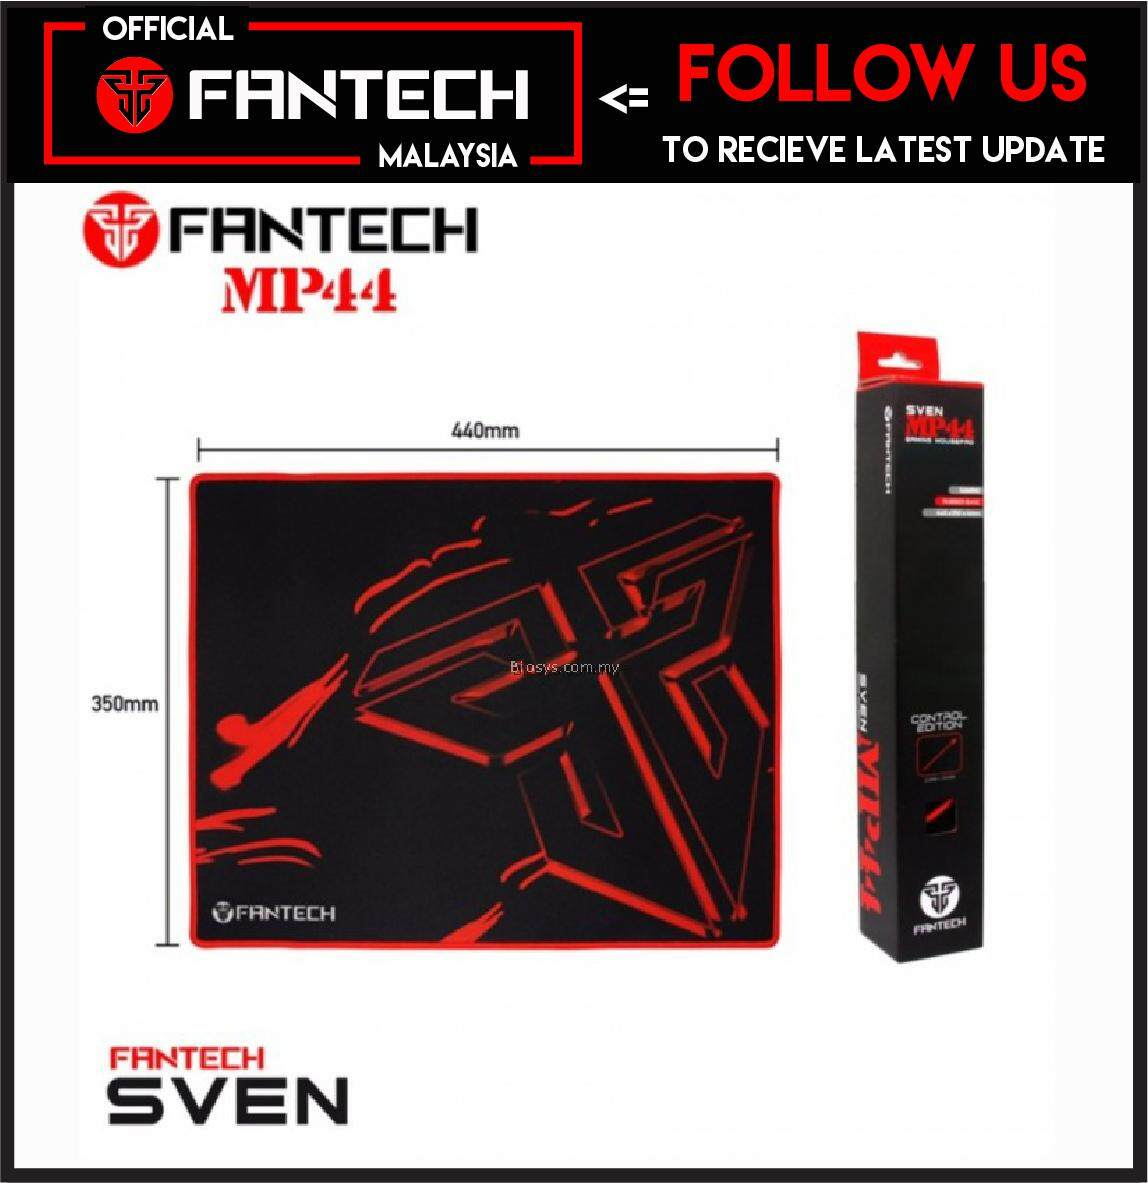 100% Original Fantech SVEN MP44 Extra Size High Non-Slip Base Gaming Mouse Pad with Edge Sewed (44cm x33cm) Malaysia